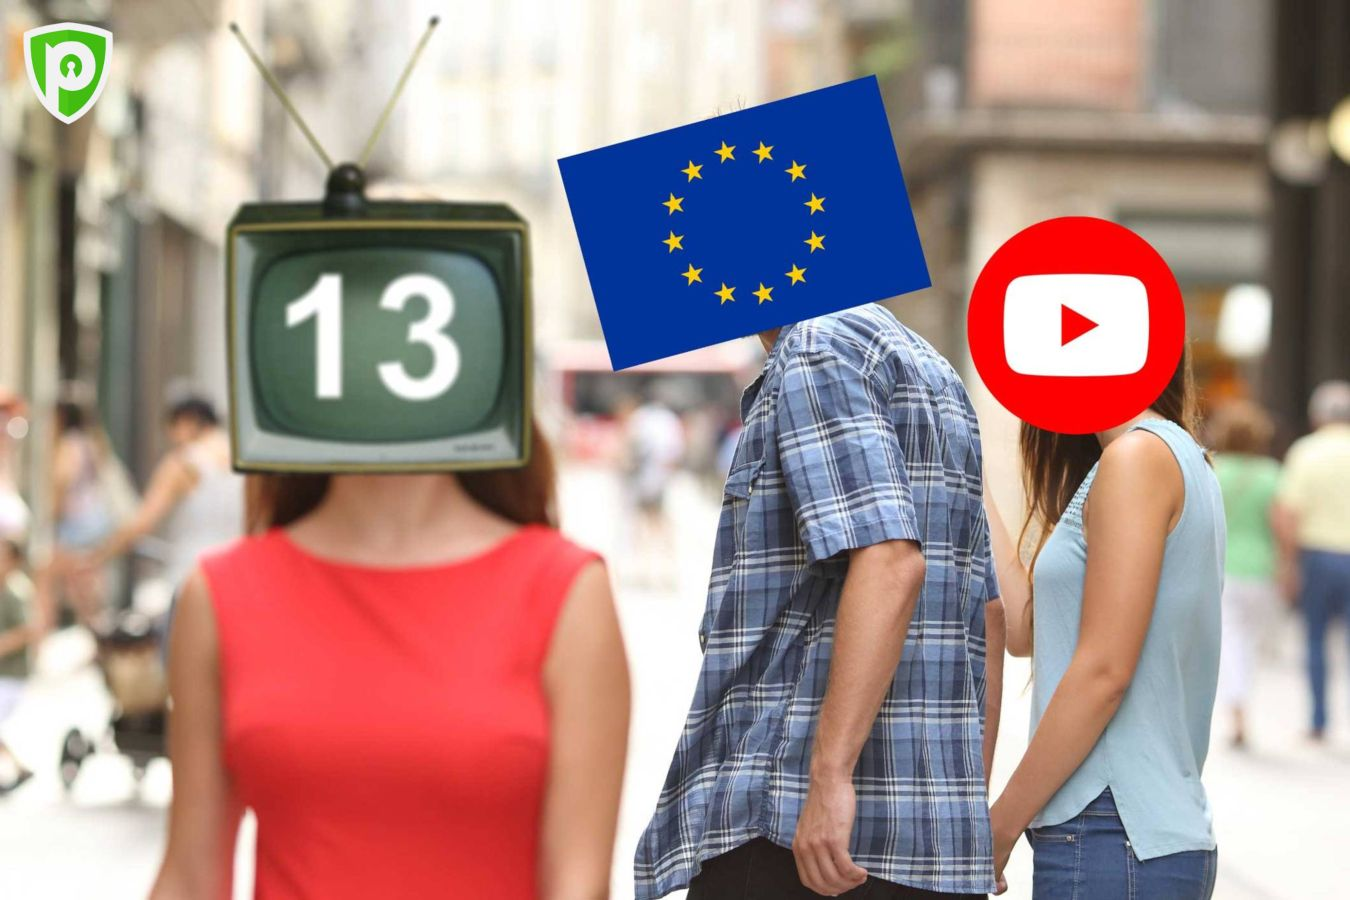 Article 13 Memes Allowed